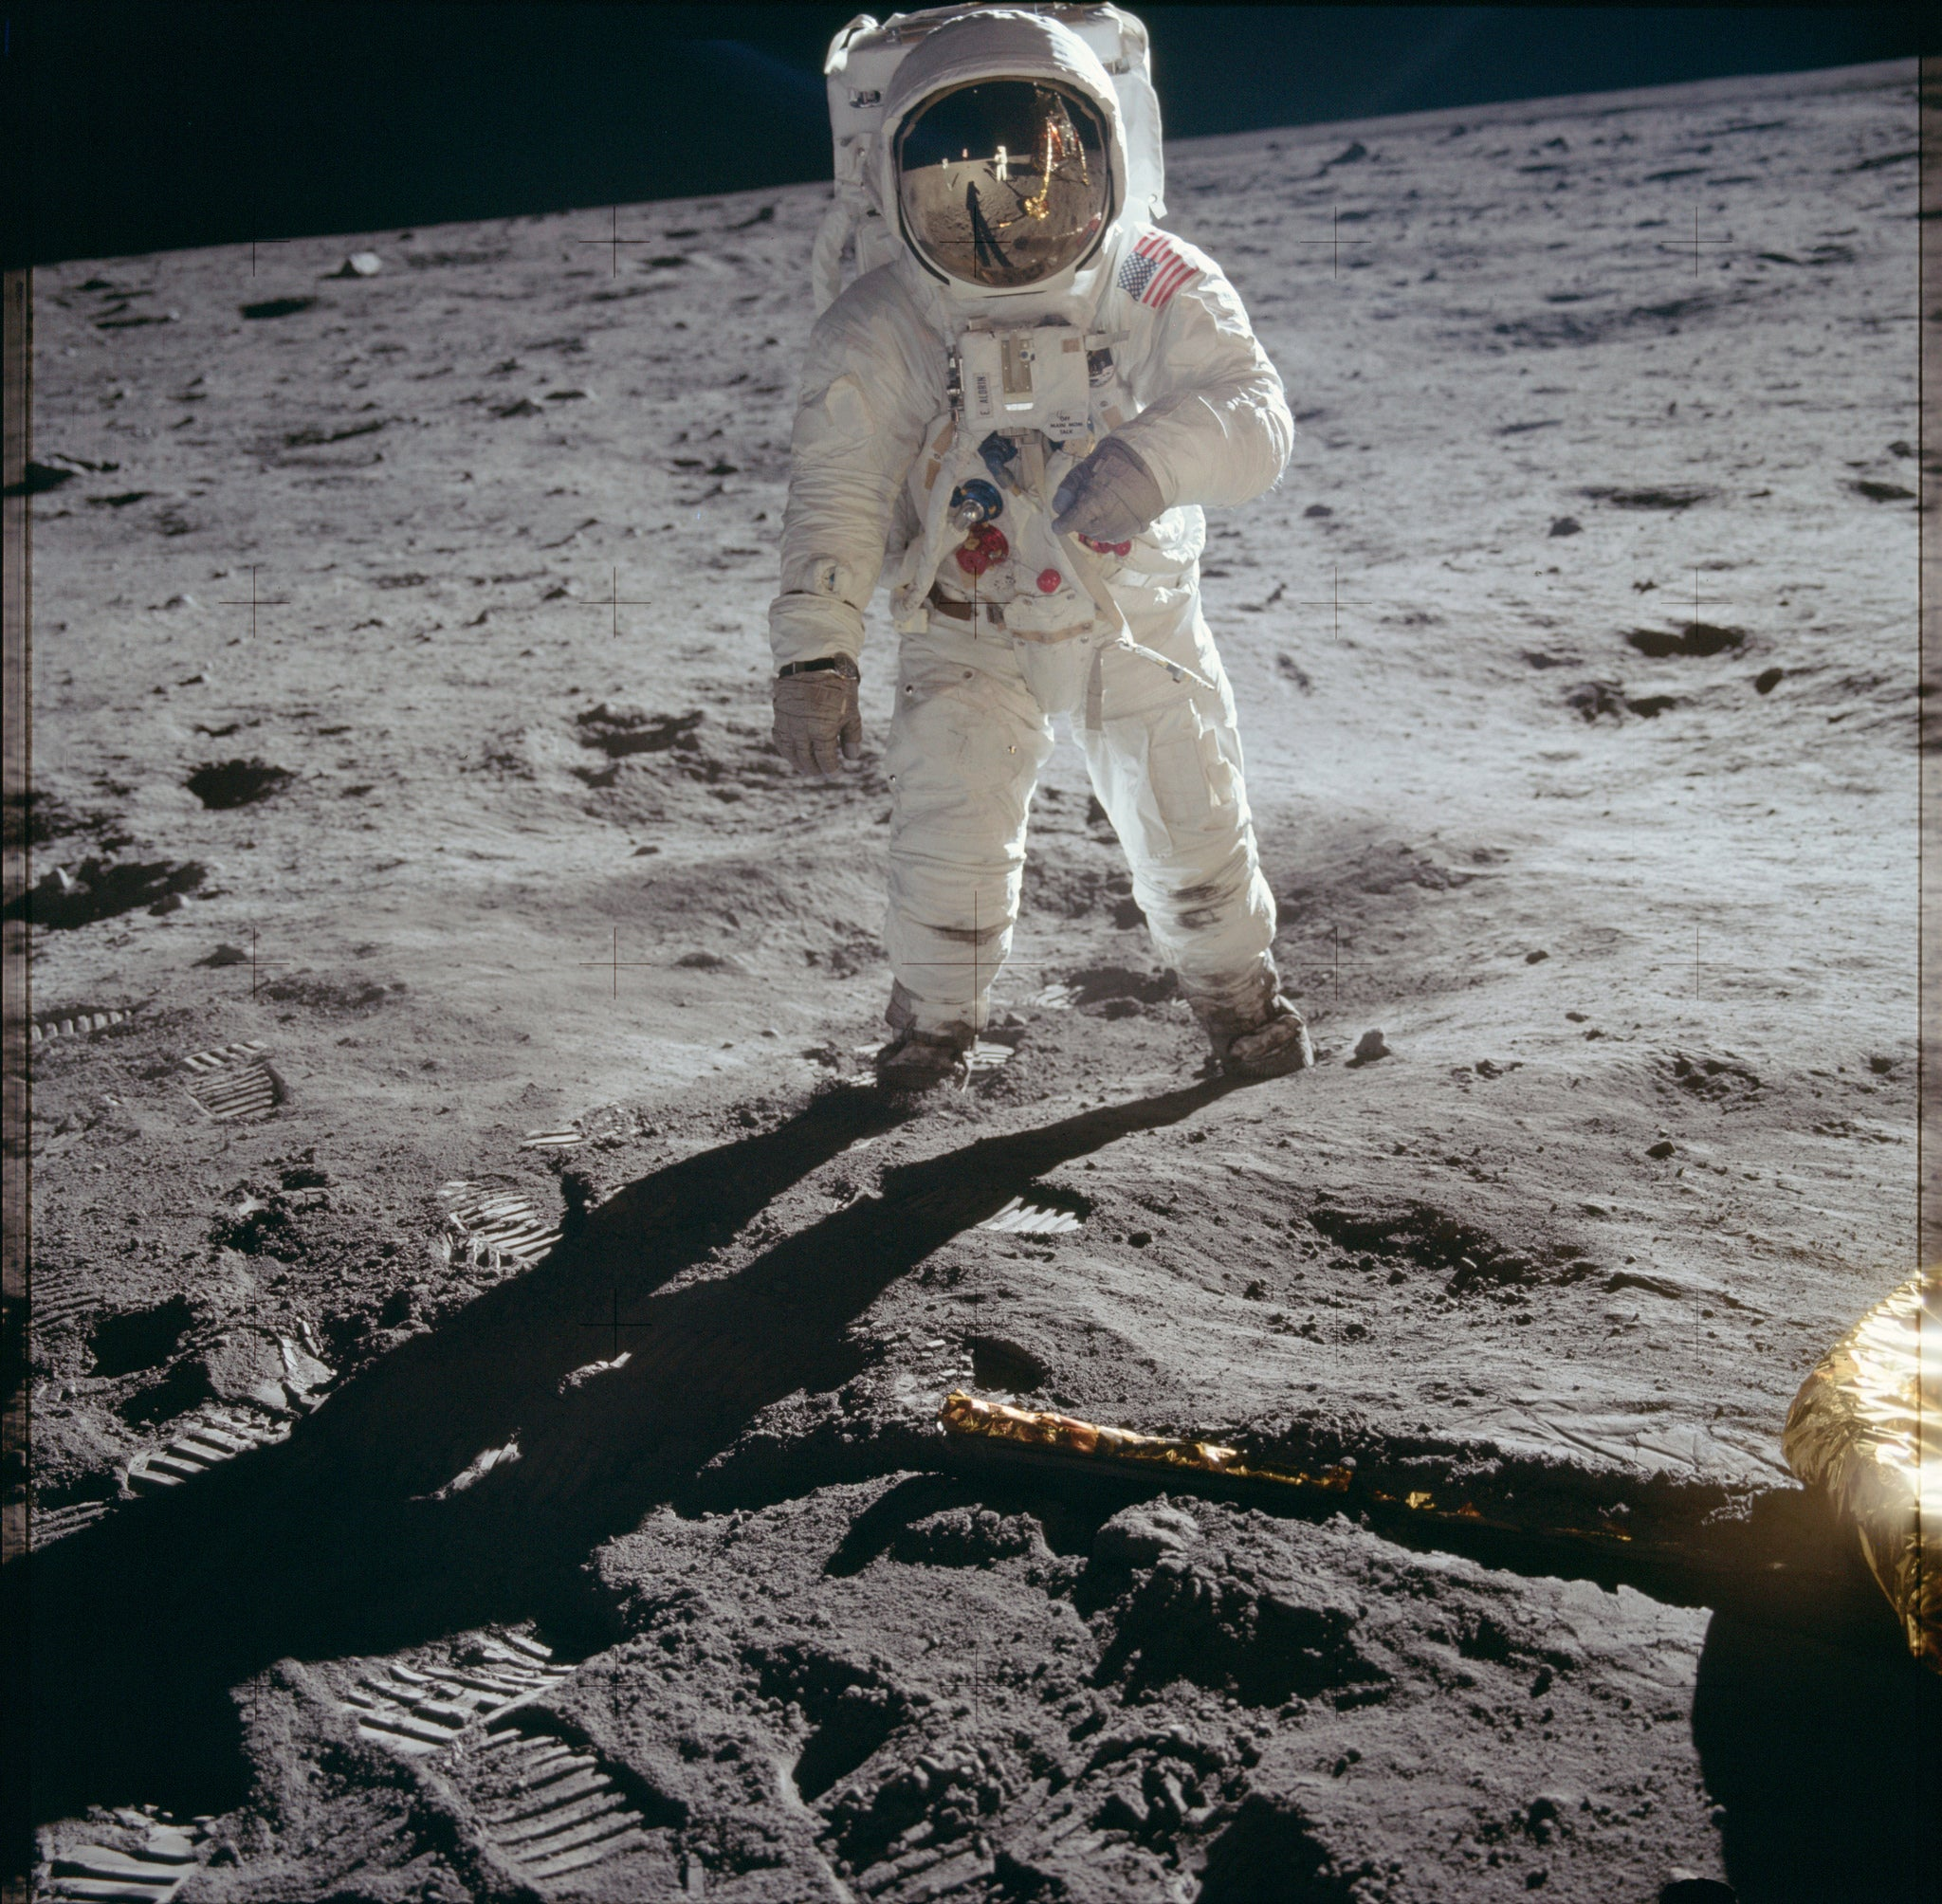 an astronaut stands on the gray surface of the moon in a spacesuit